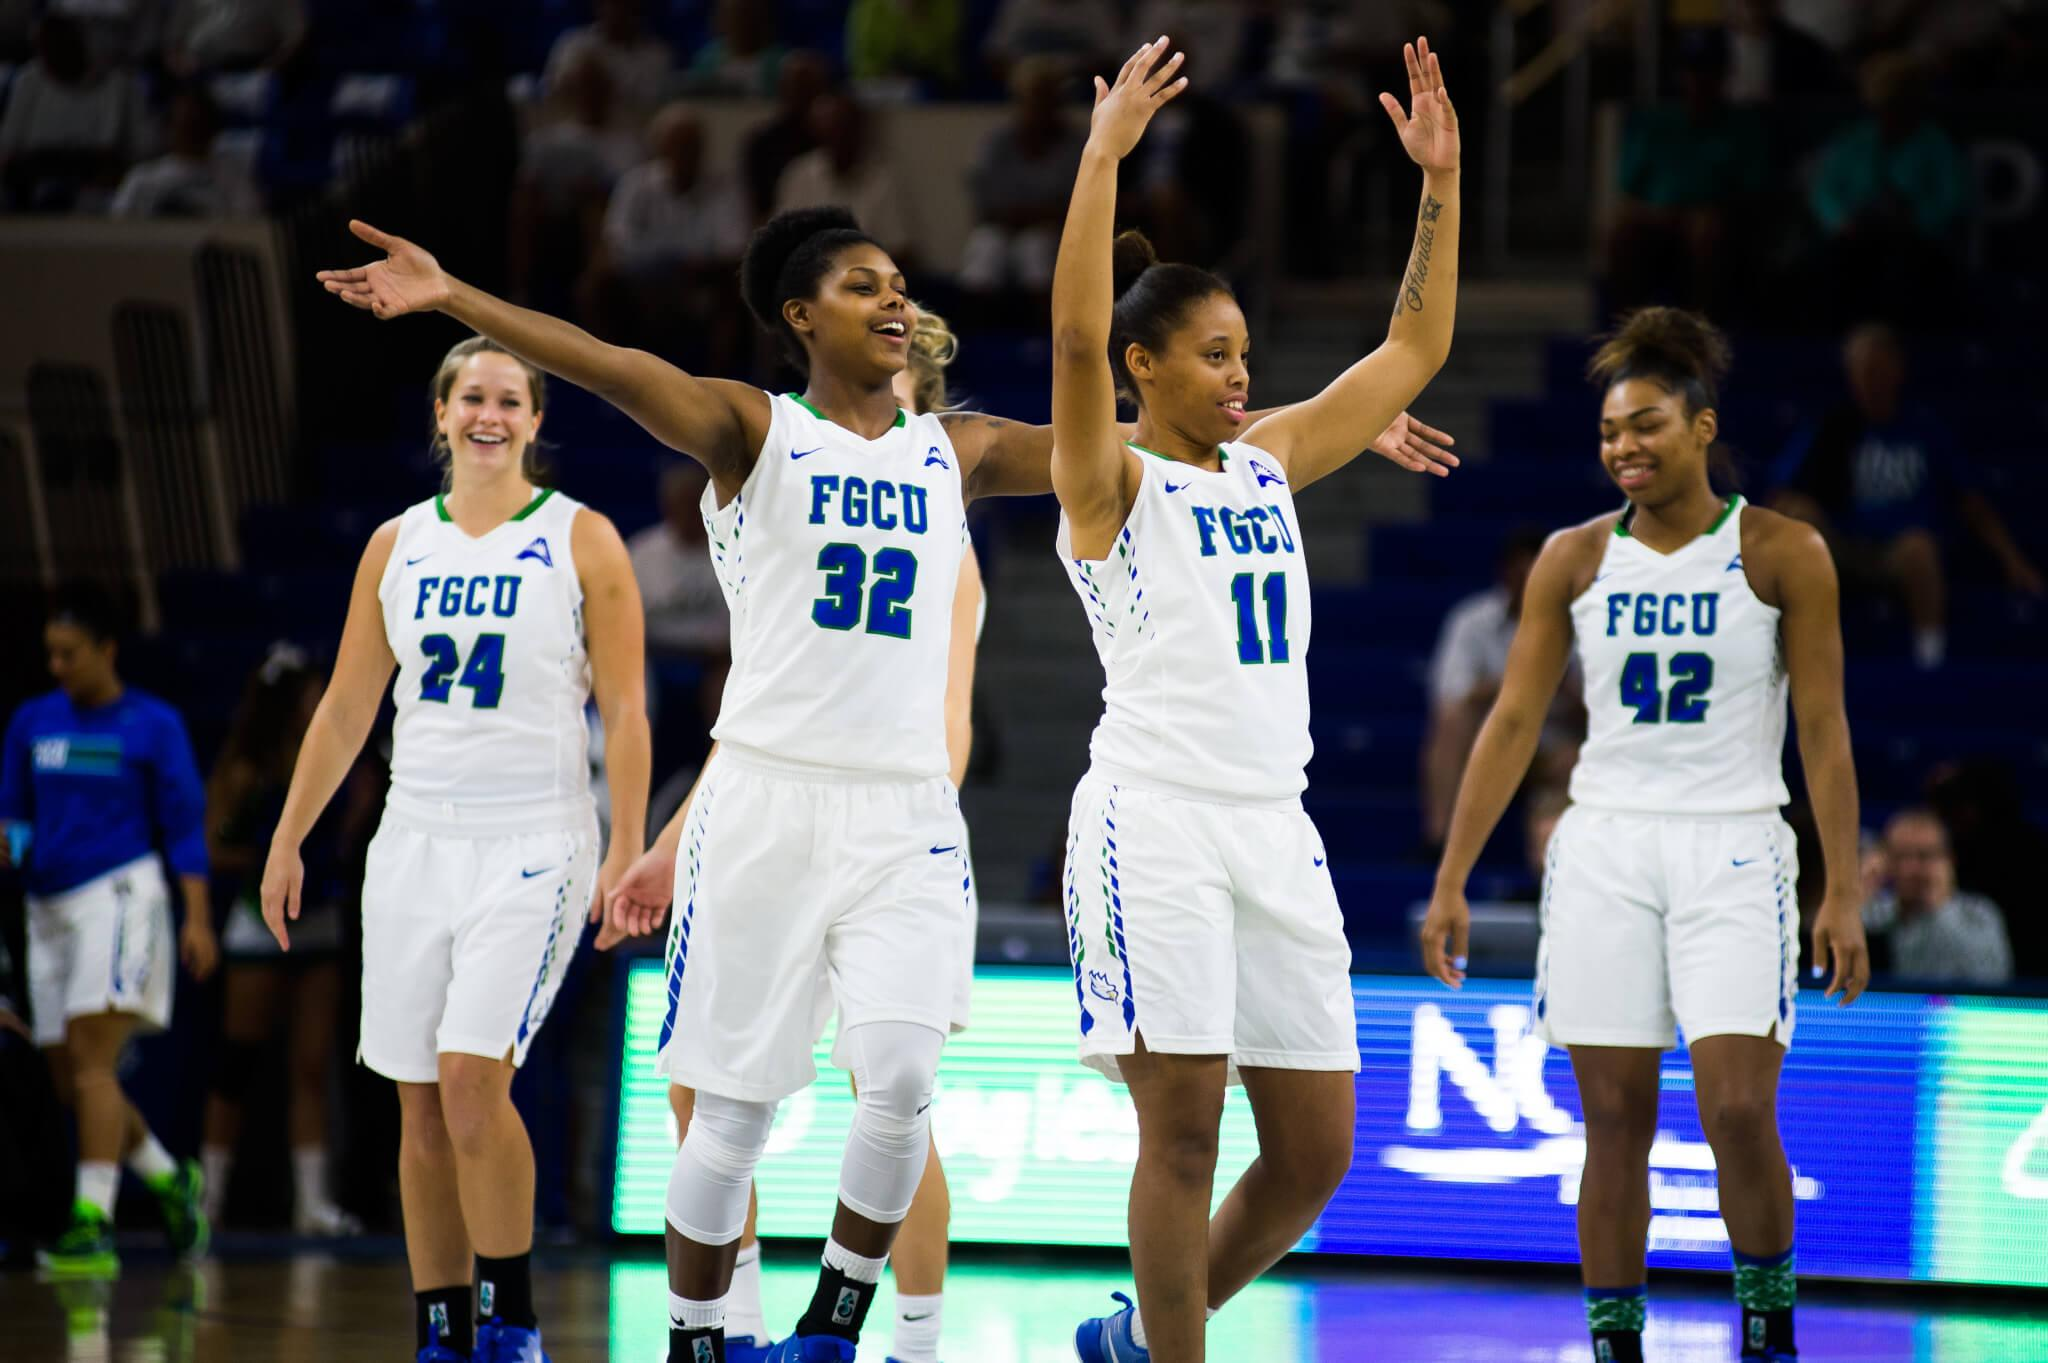 FGCU women's basketball breezes by with a win over Siena